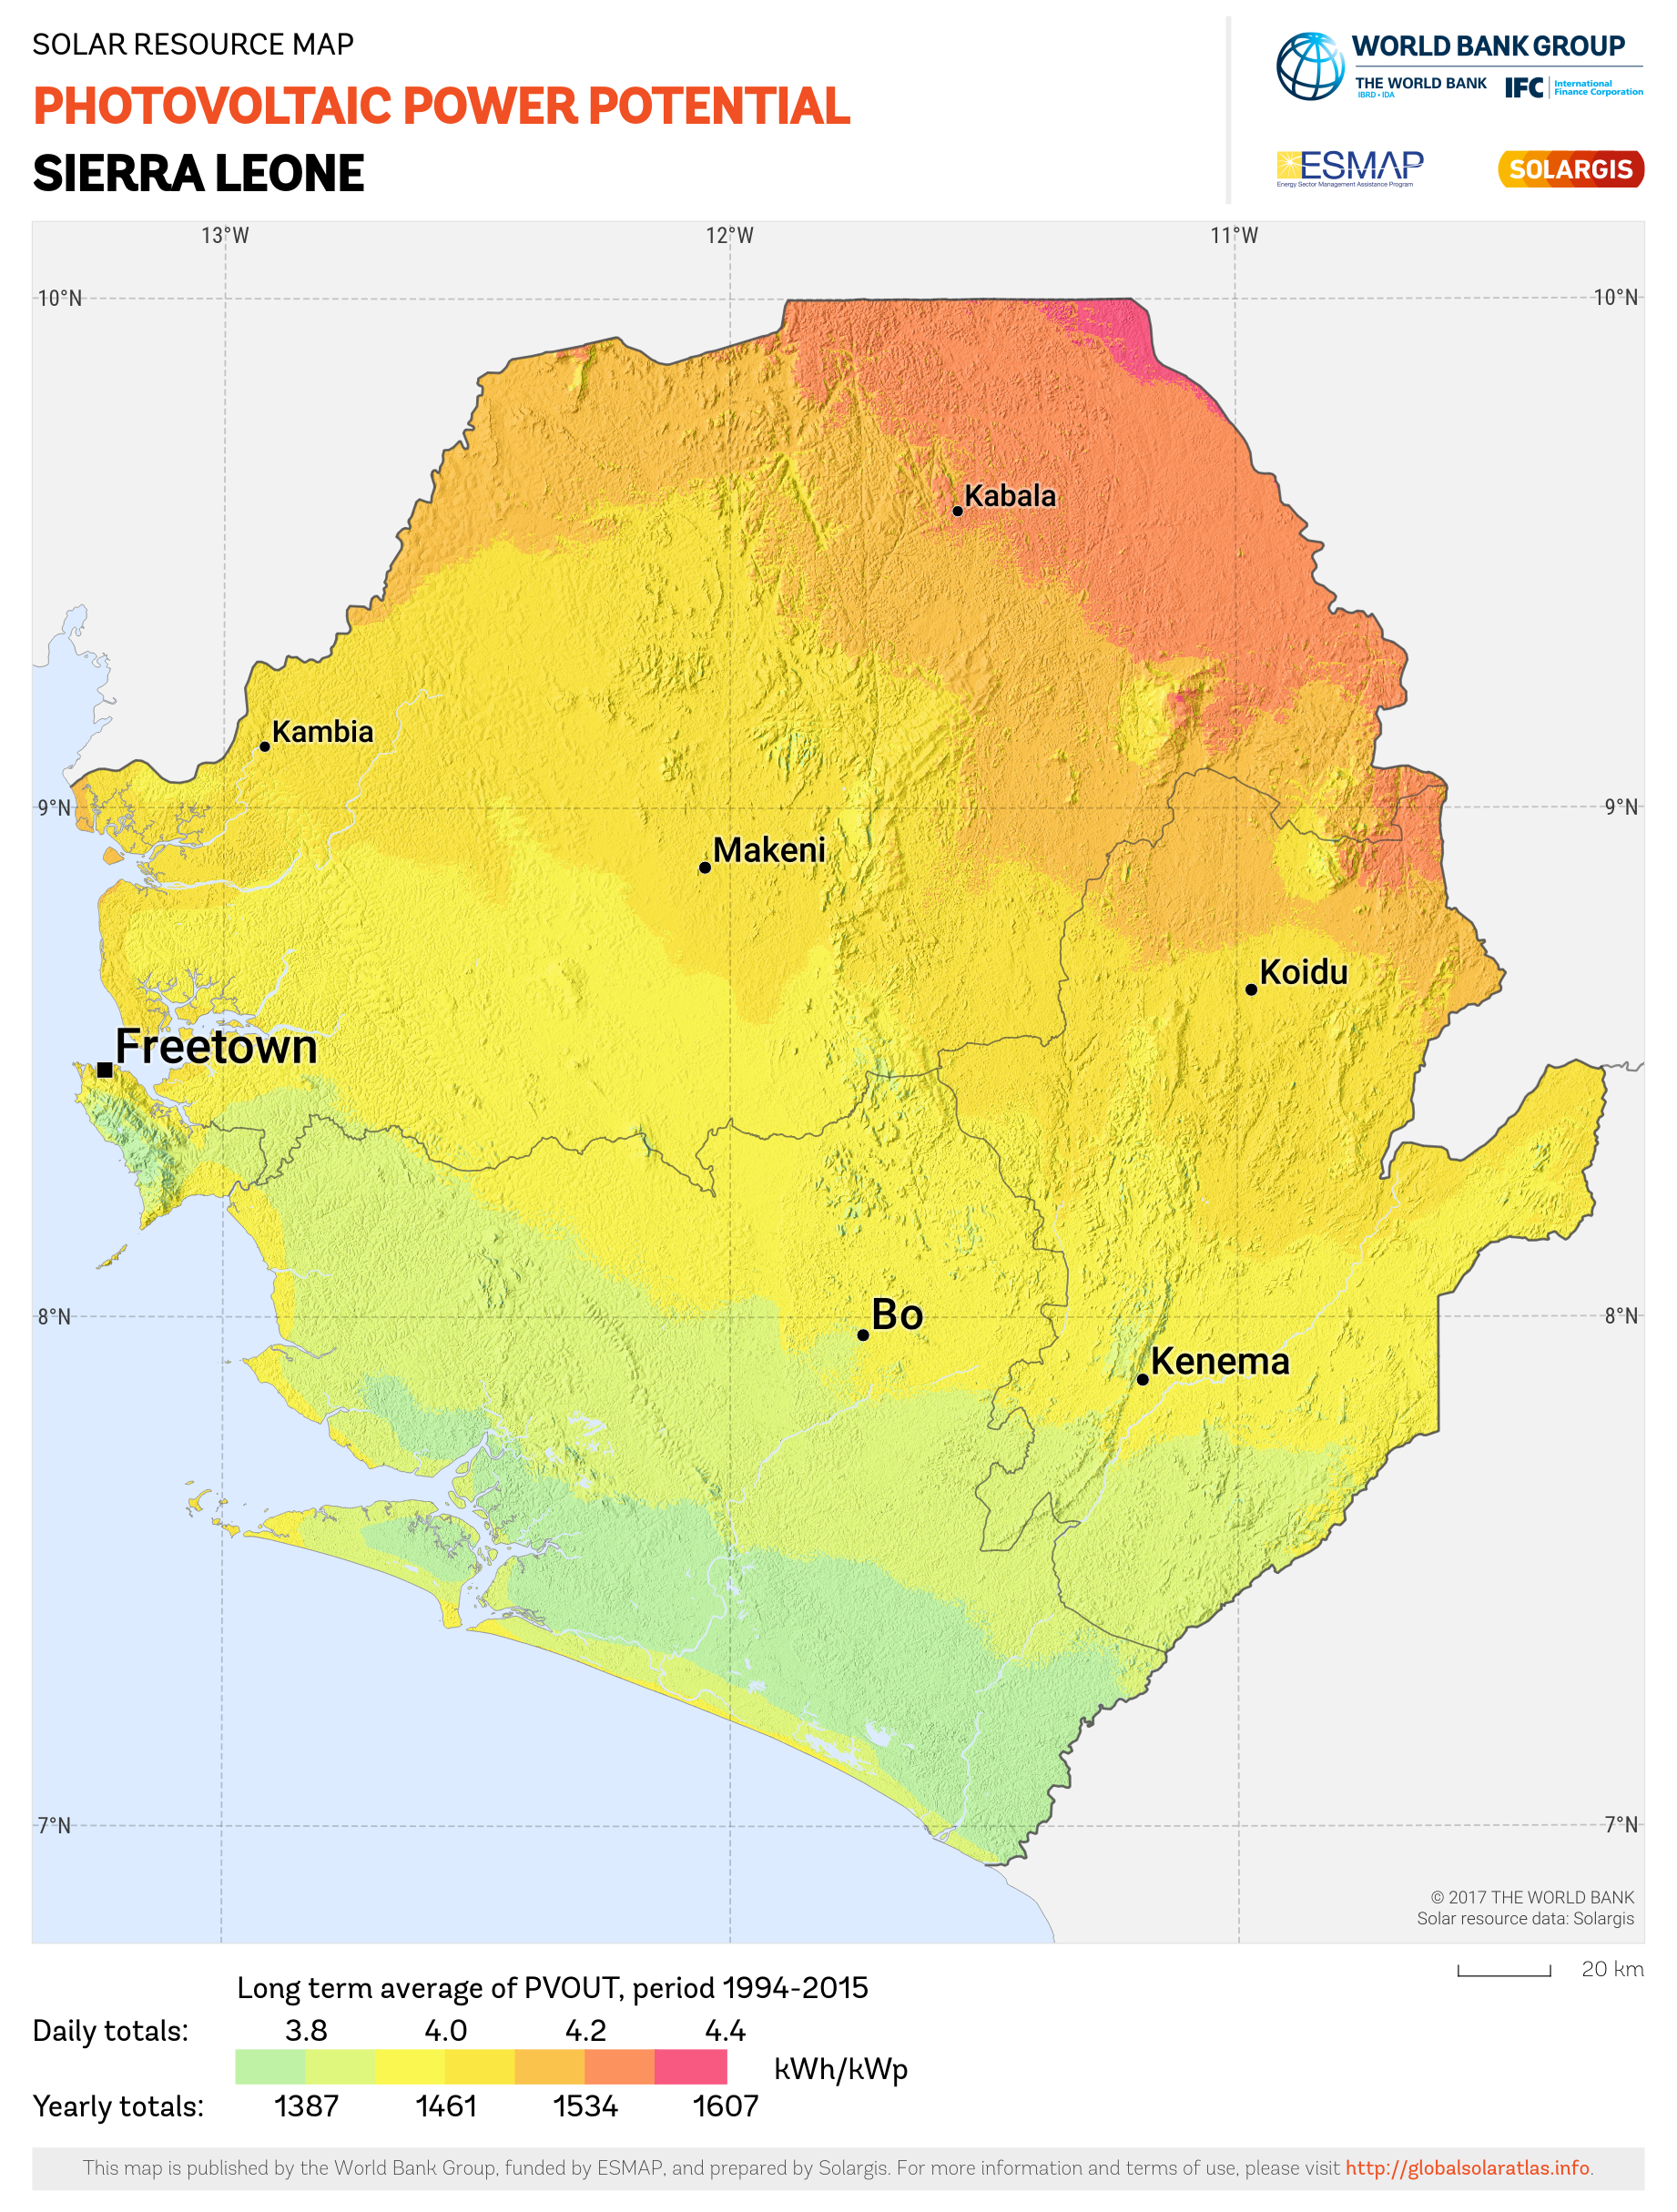 SOLARGIS_Photovoltaic Electricity Potential Sierra Leone_PVOUT KWH per KWp